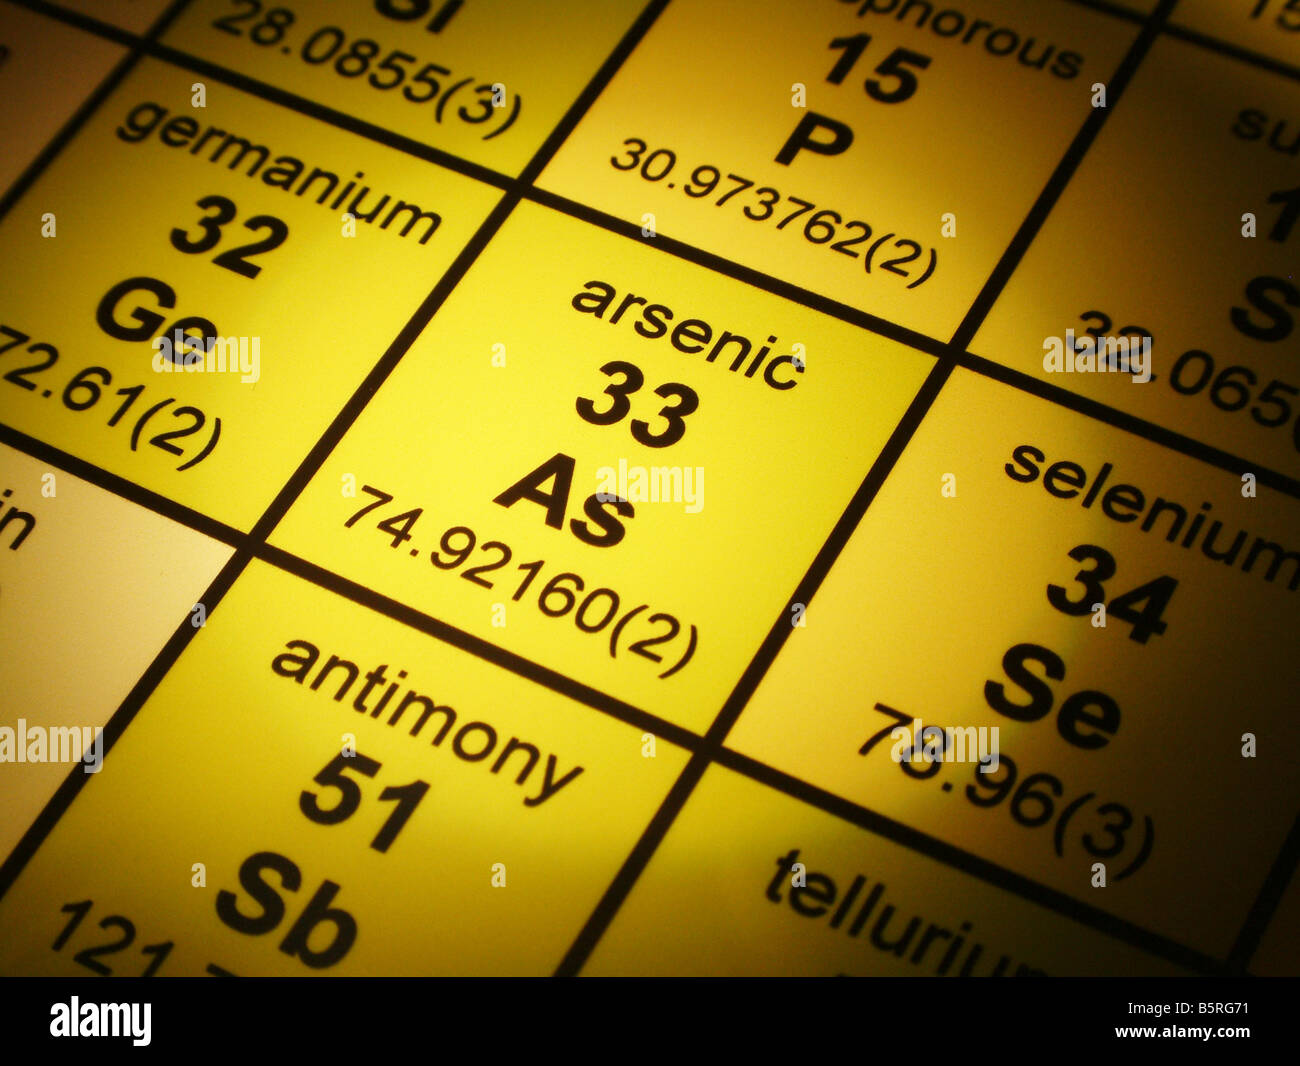 Arsenic Periodic Table | www.pixshark.com - Images ...